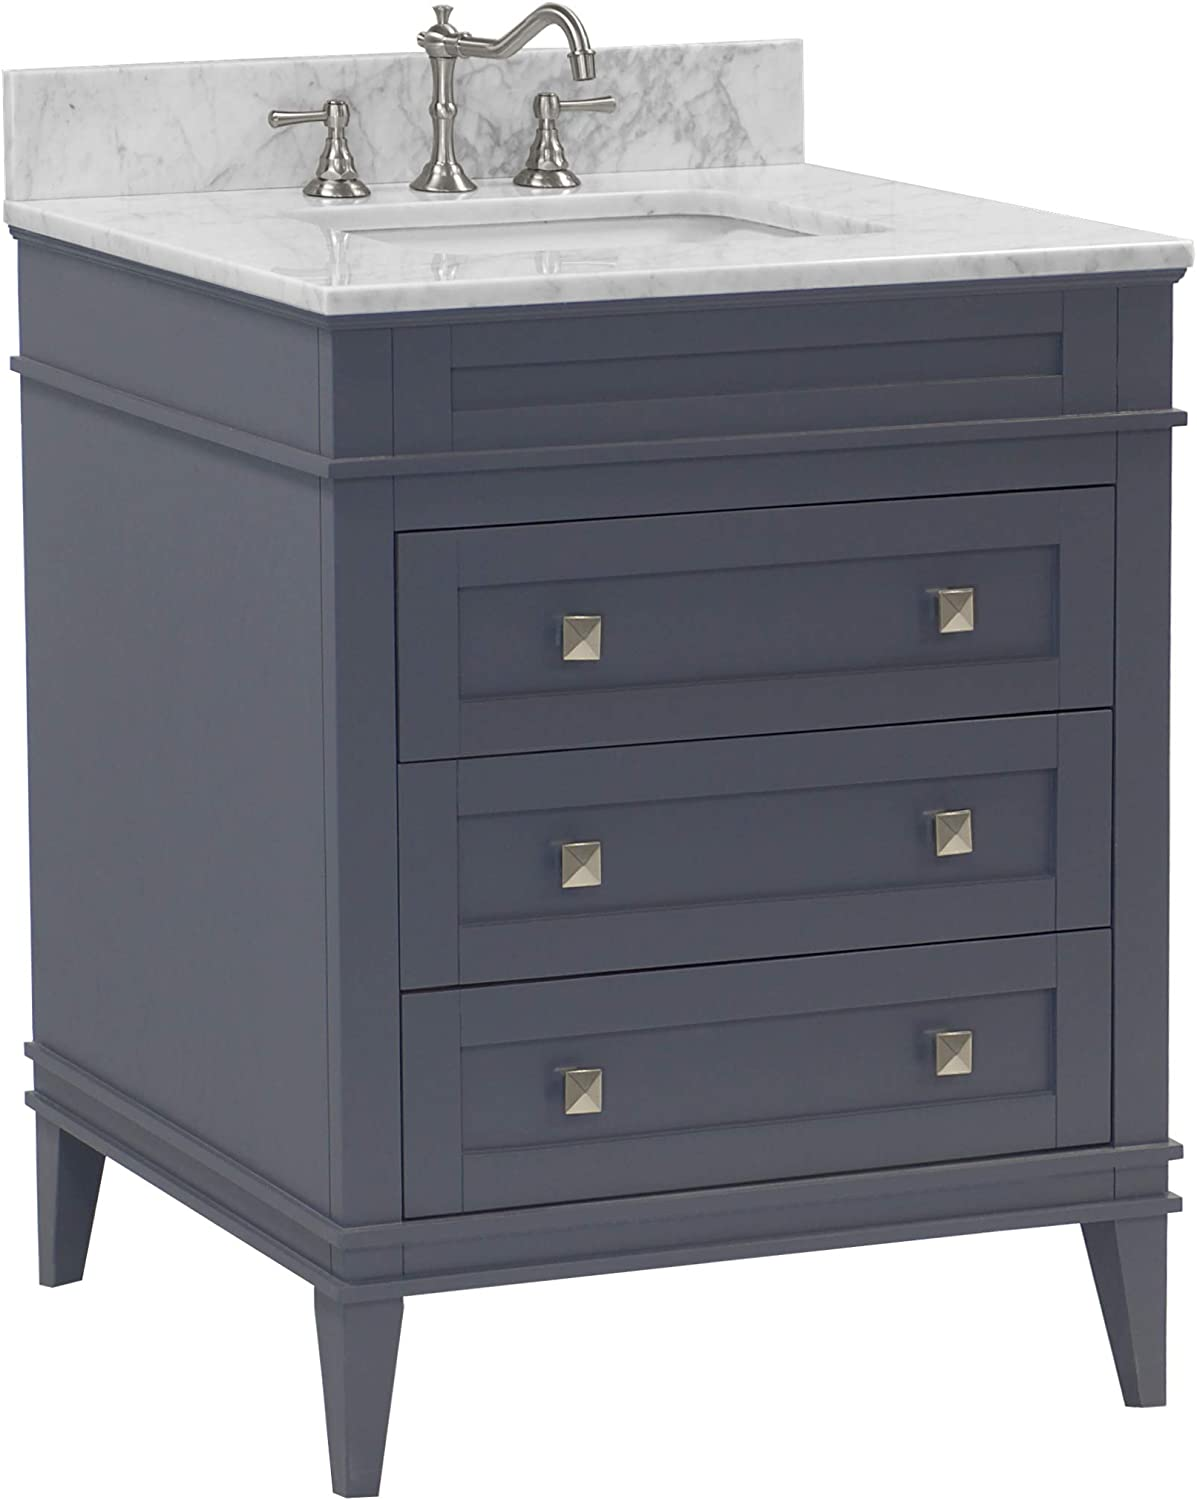 Eleanor 30 Inch Bathroom Vanity Carrara Charcoal Gray Includes Charcoal Gray Cabinet With Authentic Italian Carrara Marble Countertop And White Ceramic Sink Home Improvement Amazon Com